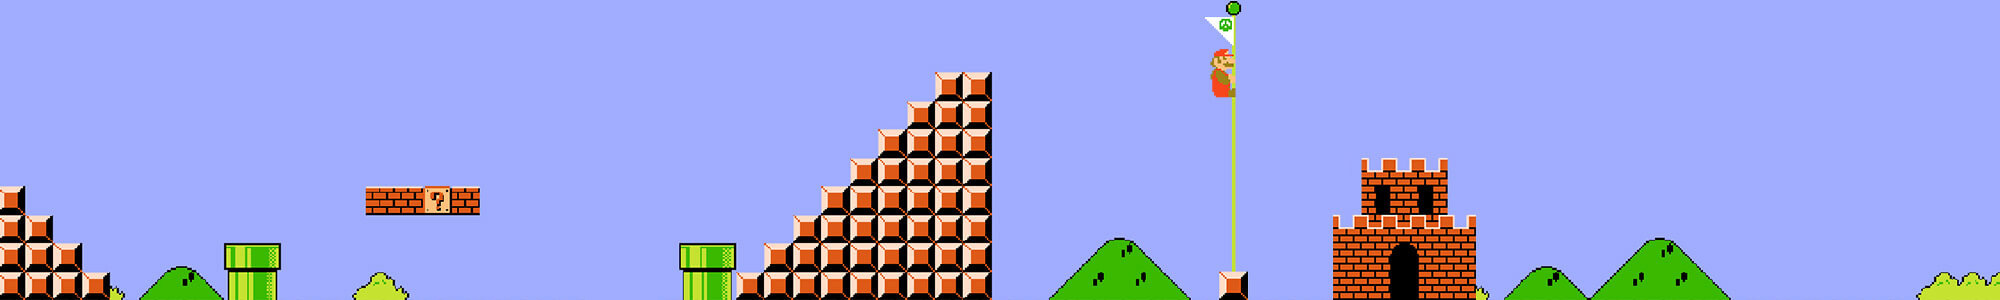 CI_NSwitchDS_SuperMarioBros35_StageBackground.jpg